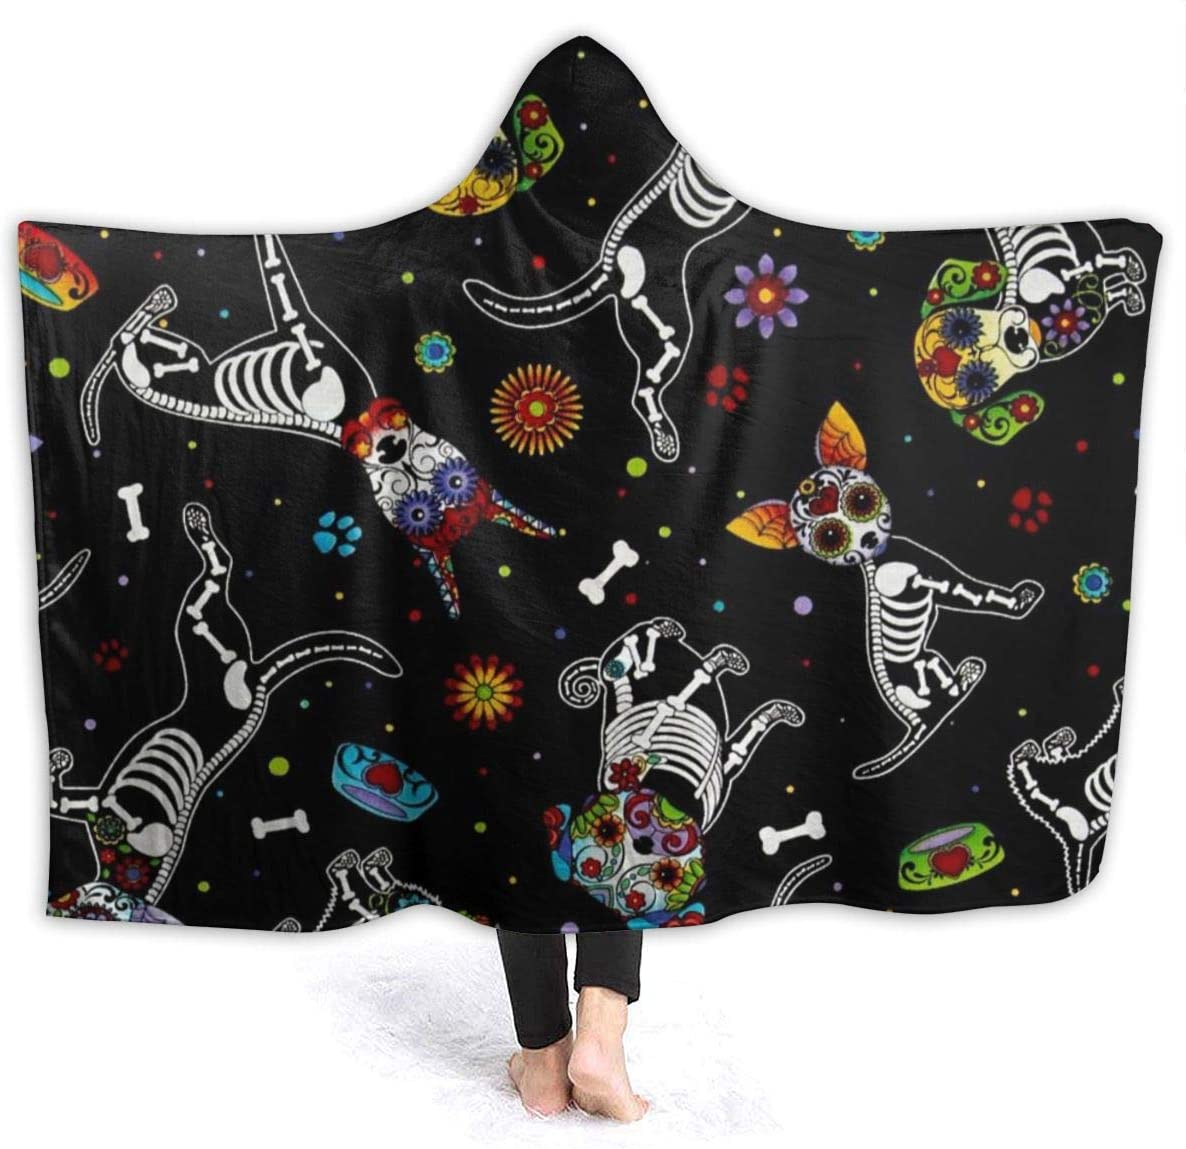 NiYoung Soft Cozy Hooded Throw Wrap for Sofa Couch Winter//Autumn T Rex Dinosaurs Blanket King Size Wearable Throw Keep Warm Sherpa Plus Velvet Camping Blanket